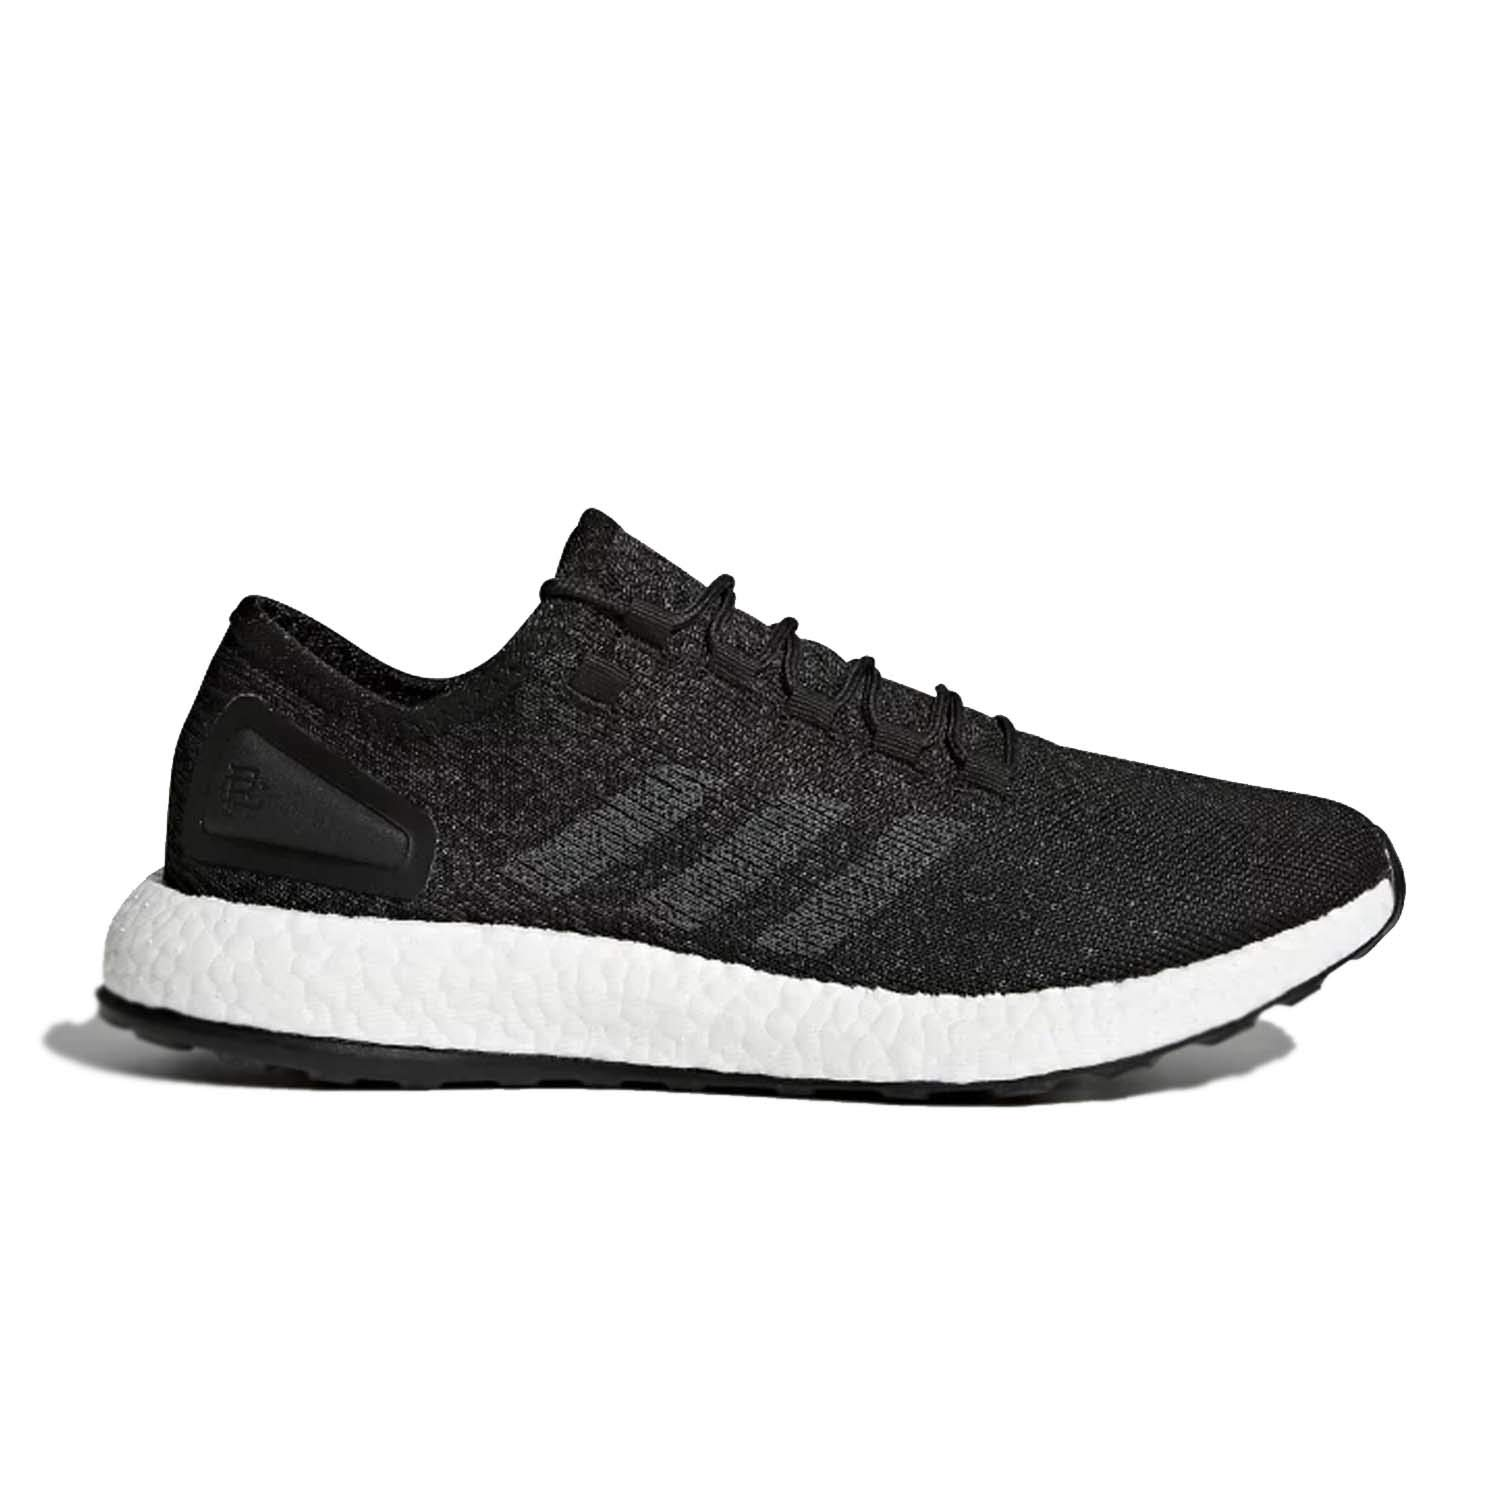 7393667985a87 Galleon - Adidas Men s Pureboost Reigning Champ M Running Shoe ...